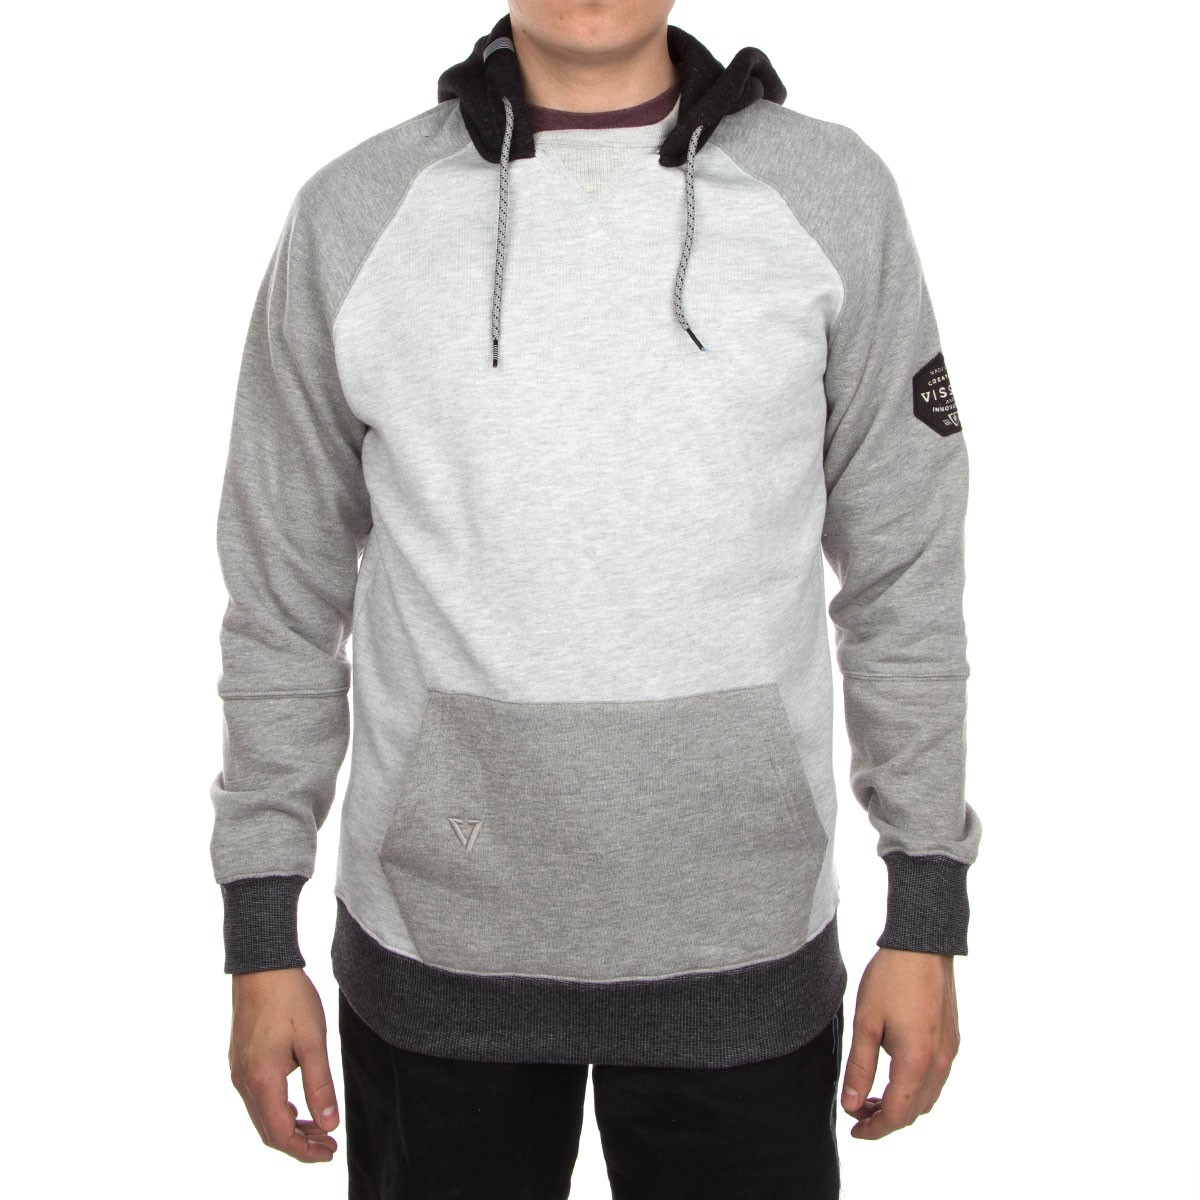 Vissla County Line Crew Hoodie - Light Grey Heather